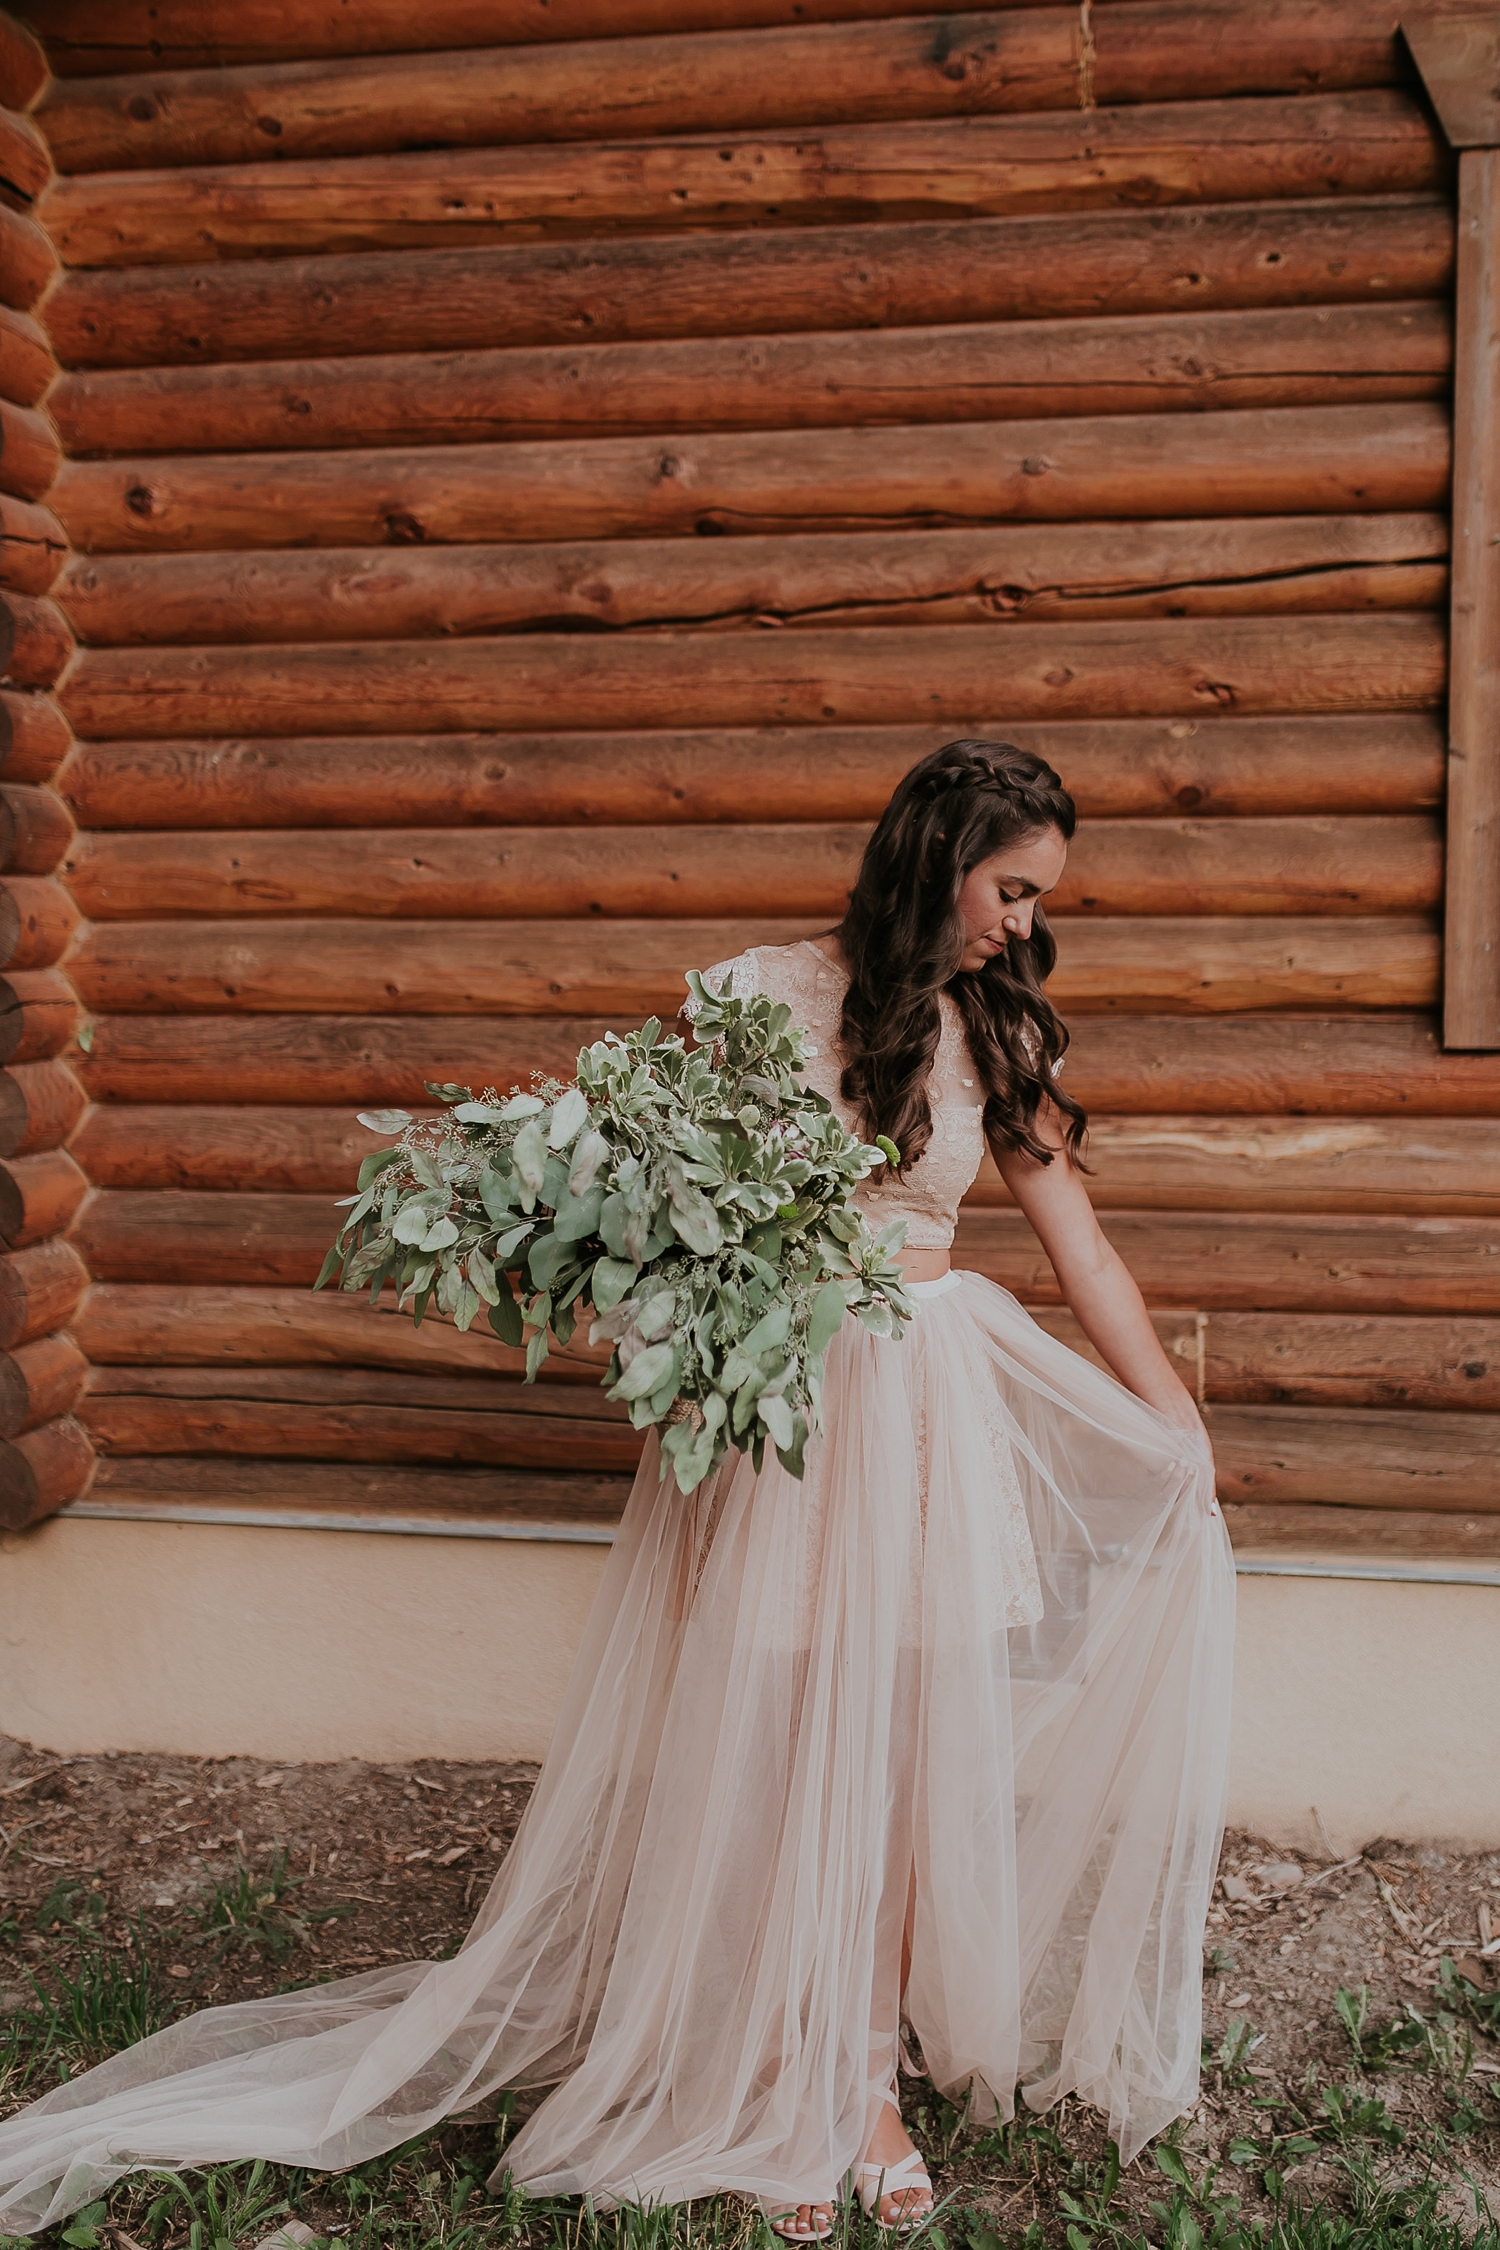 Alicia+lucia+photography+-+albuquerque+wedding+photographer+-+santa+fe+wedding+photography+-+new+mexico+wedding+photographer+-+pagosa+springs+wedding+-+destination+wedding_0014.jpg